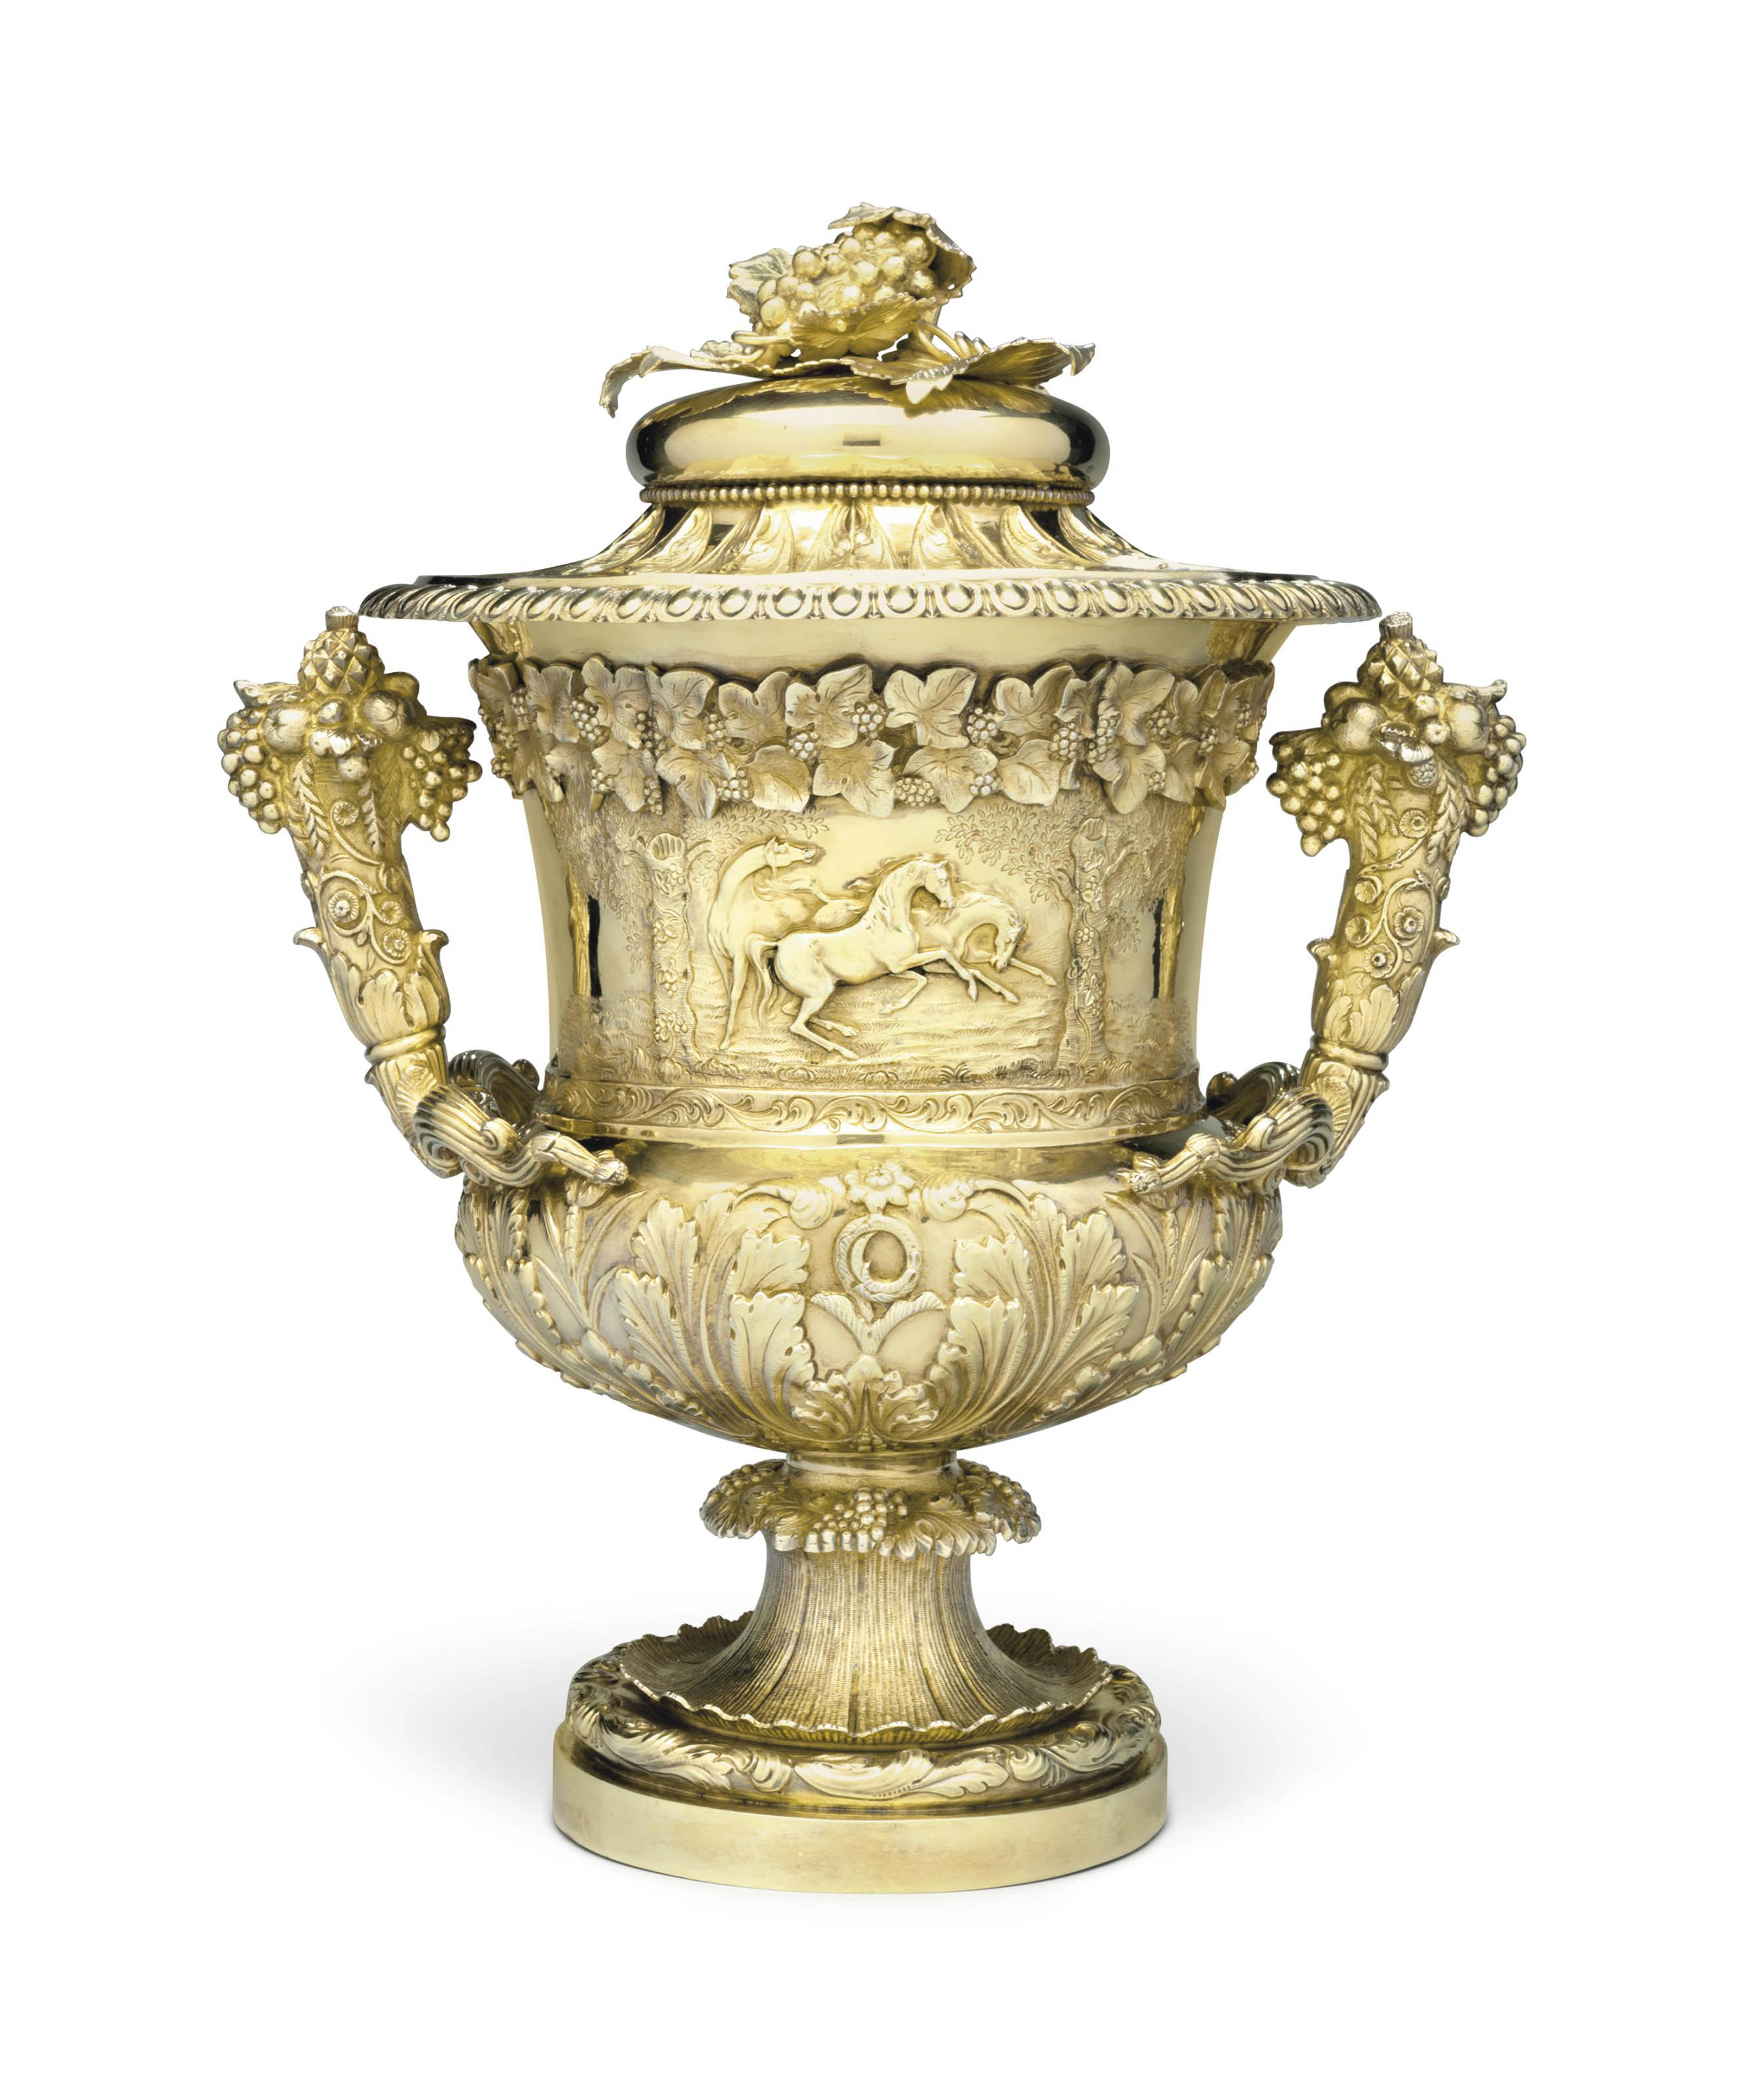 A GEORGE IV SILVER-GILT TROPHY CUP AND COVER